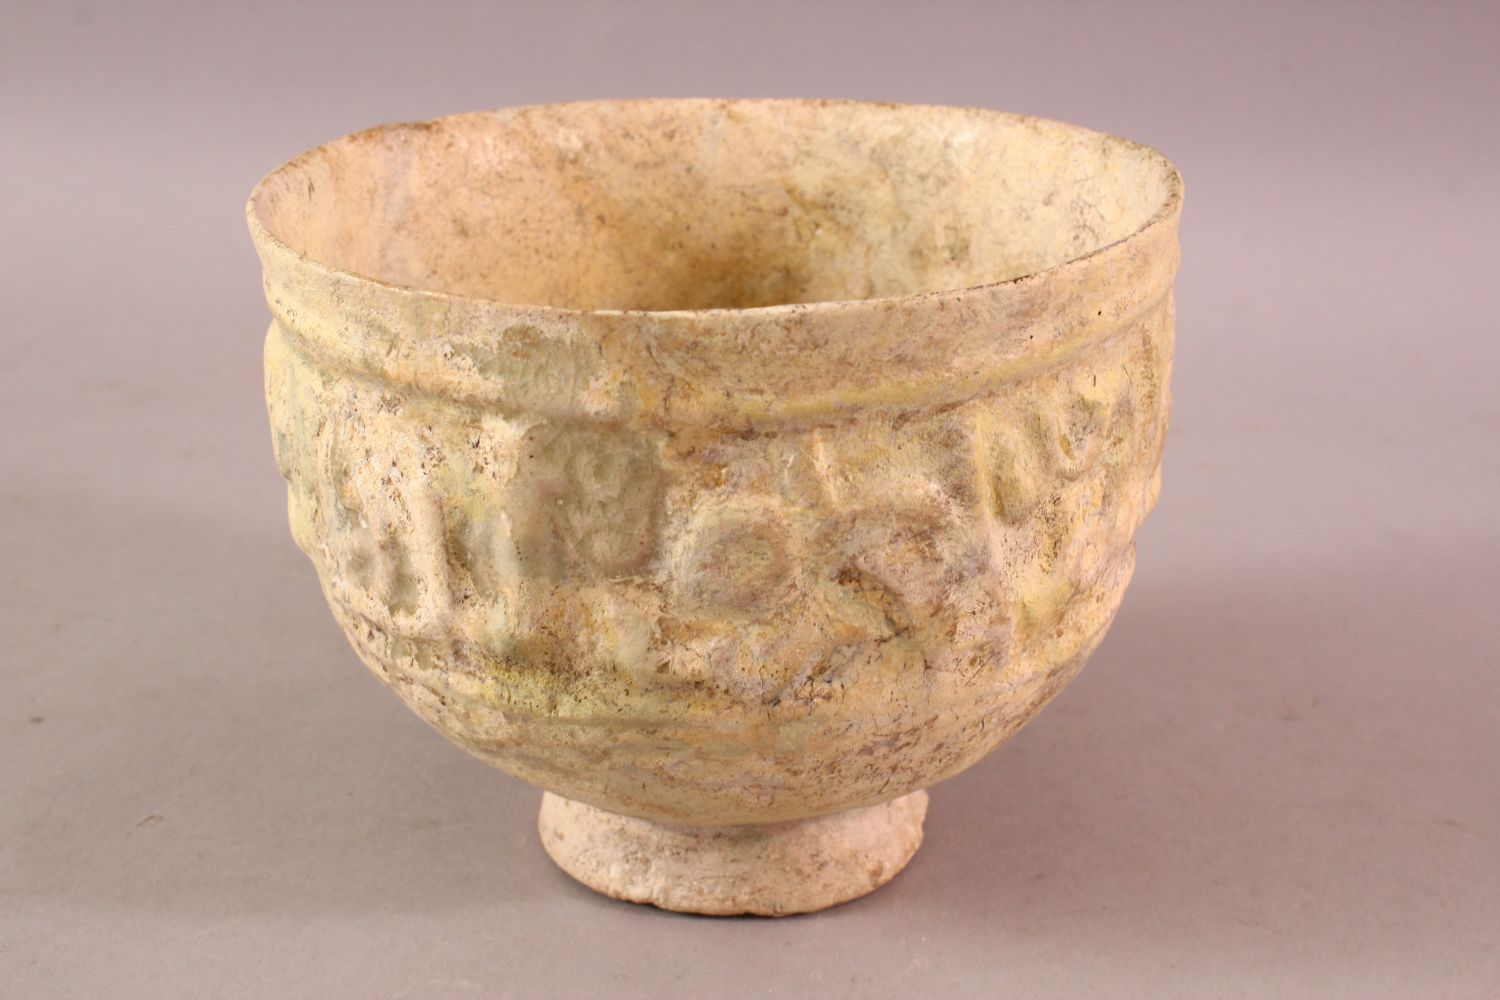 A 12TH CENTURY KUFIC SCRIPT GLAZED POTTERY BOWL, the exterior with moulded script, 15cm diameter, - Image 3 of 6